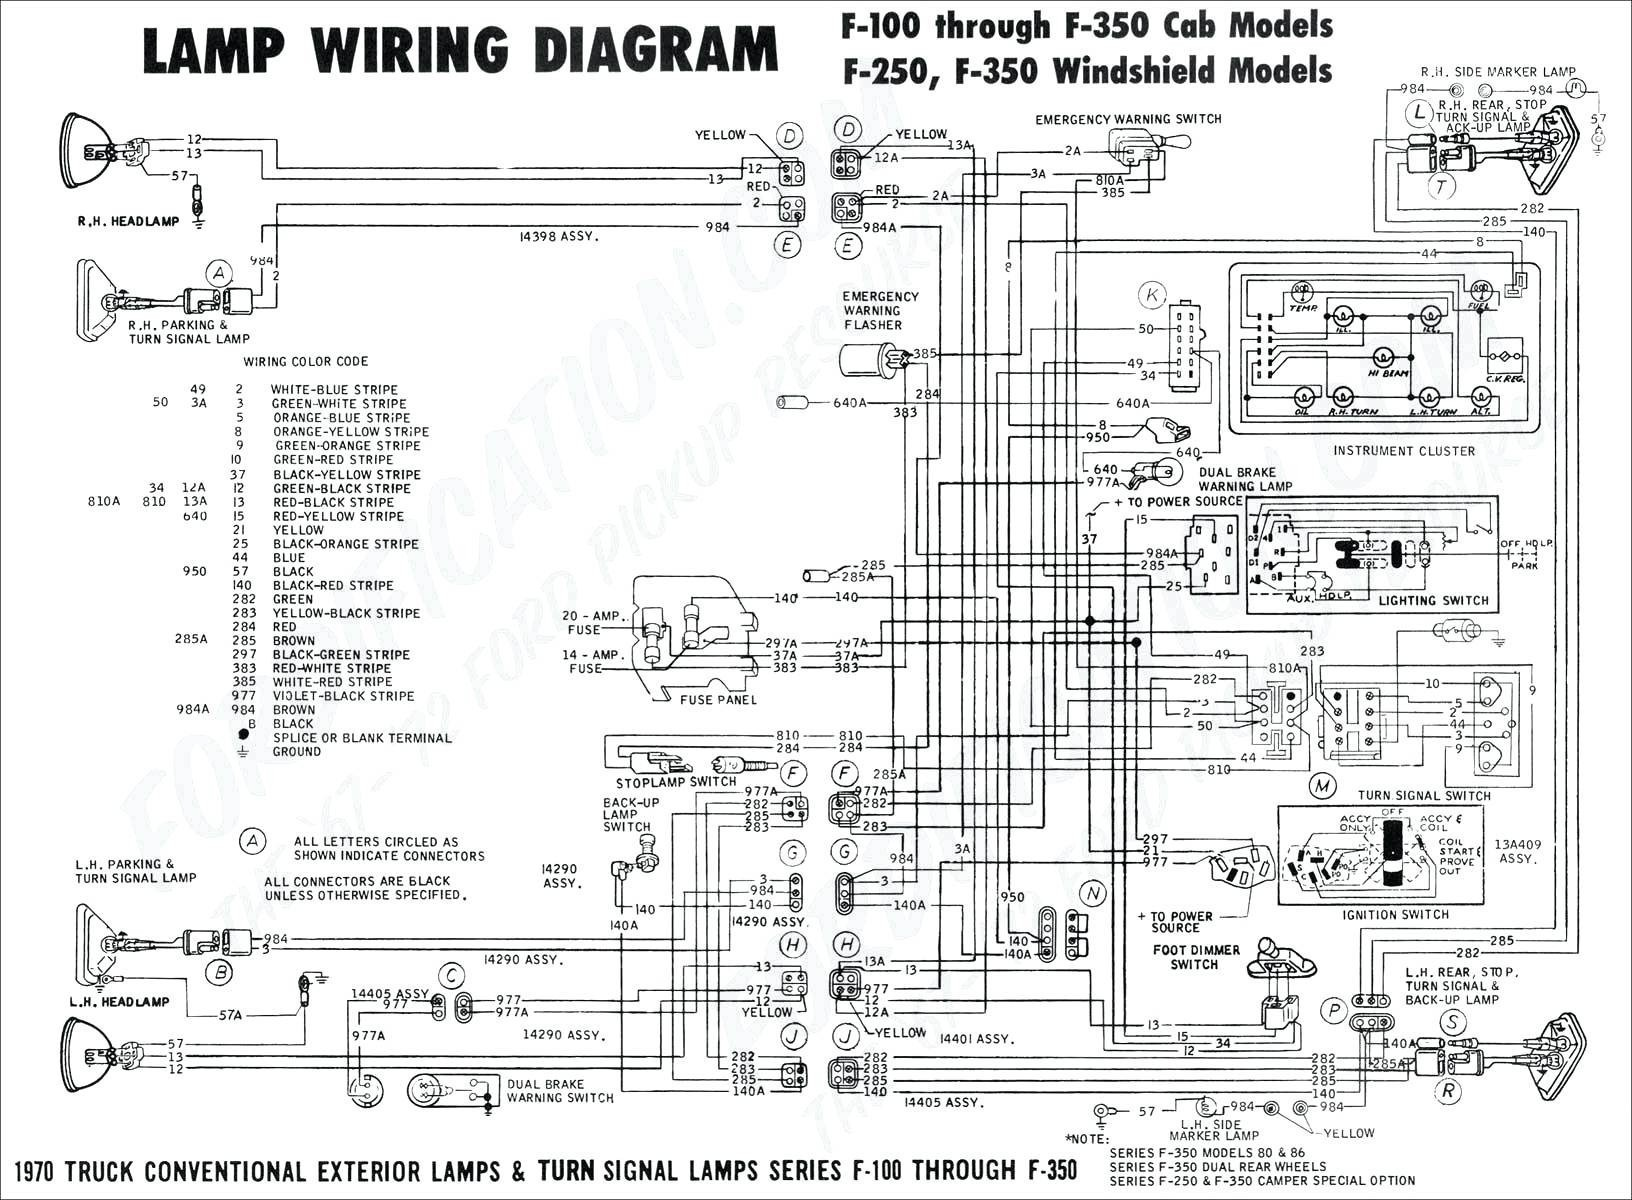 4 3 Liter V6 Vortec Engine Diagram Diagram Also Chevy Blazer 4 3 Engine Diagram Besides 2000 Chevy Of 4 3 Liter V6 Vortec Engine Diagram